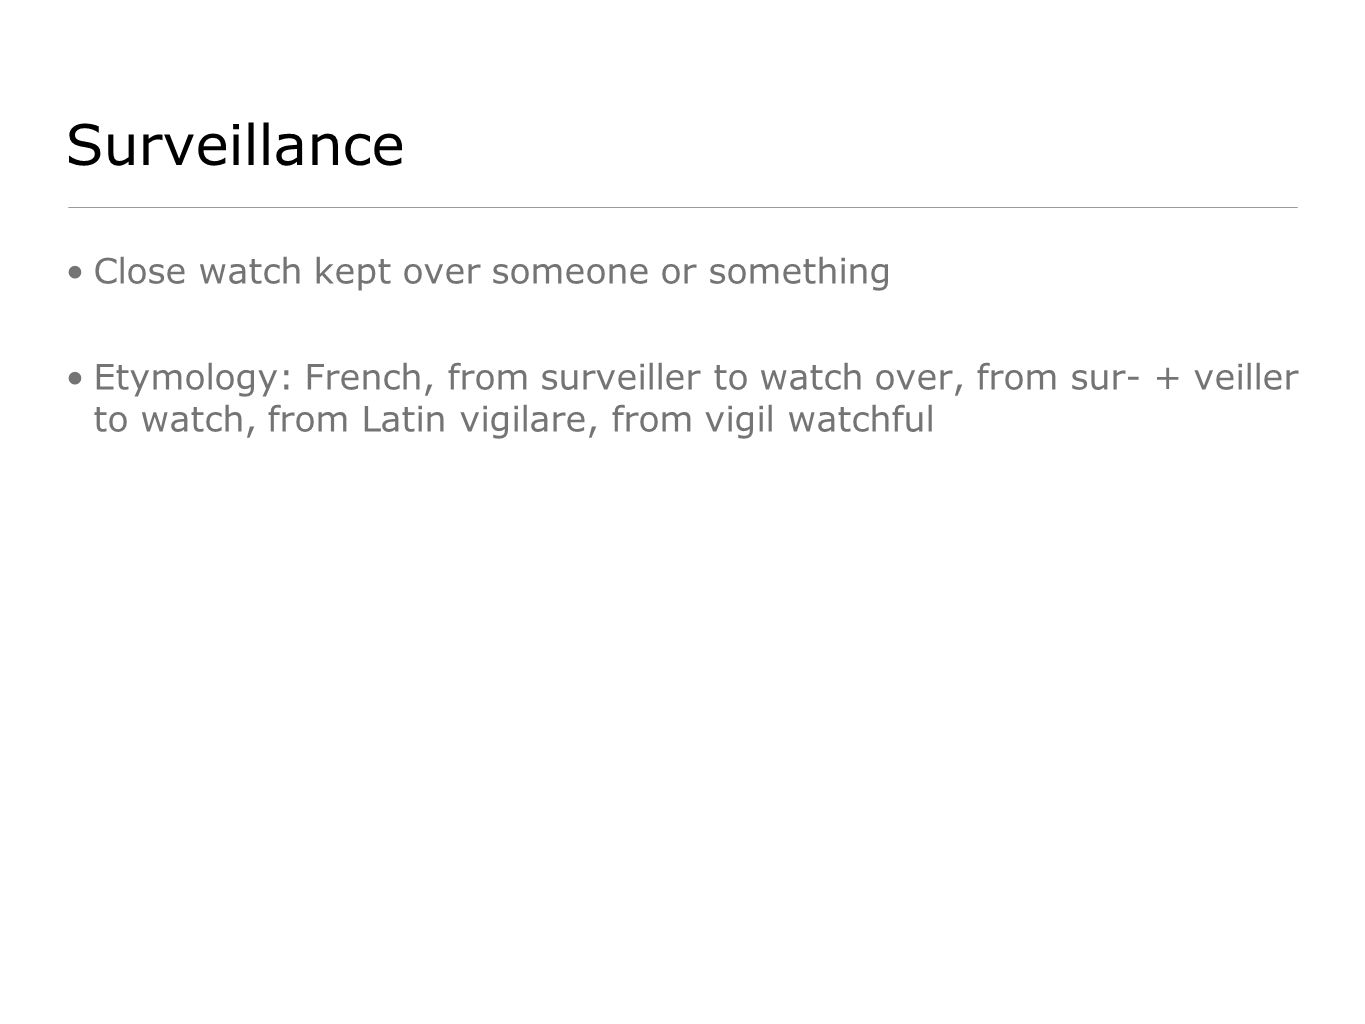 Surveillance Close watch kept over someone or something Etymology: French, from surveiller to watch over, from sur- + veiller to watch, from Latin vigilare, from vigil watchful